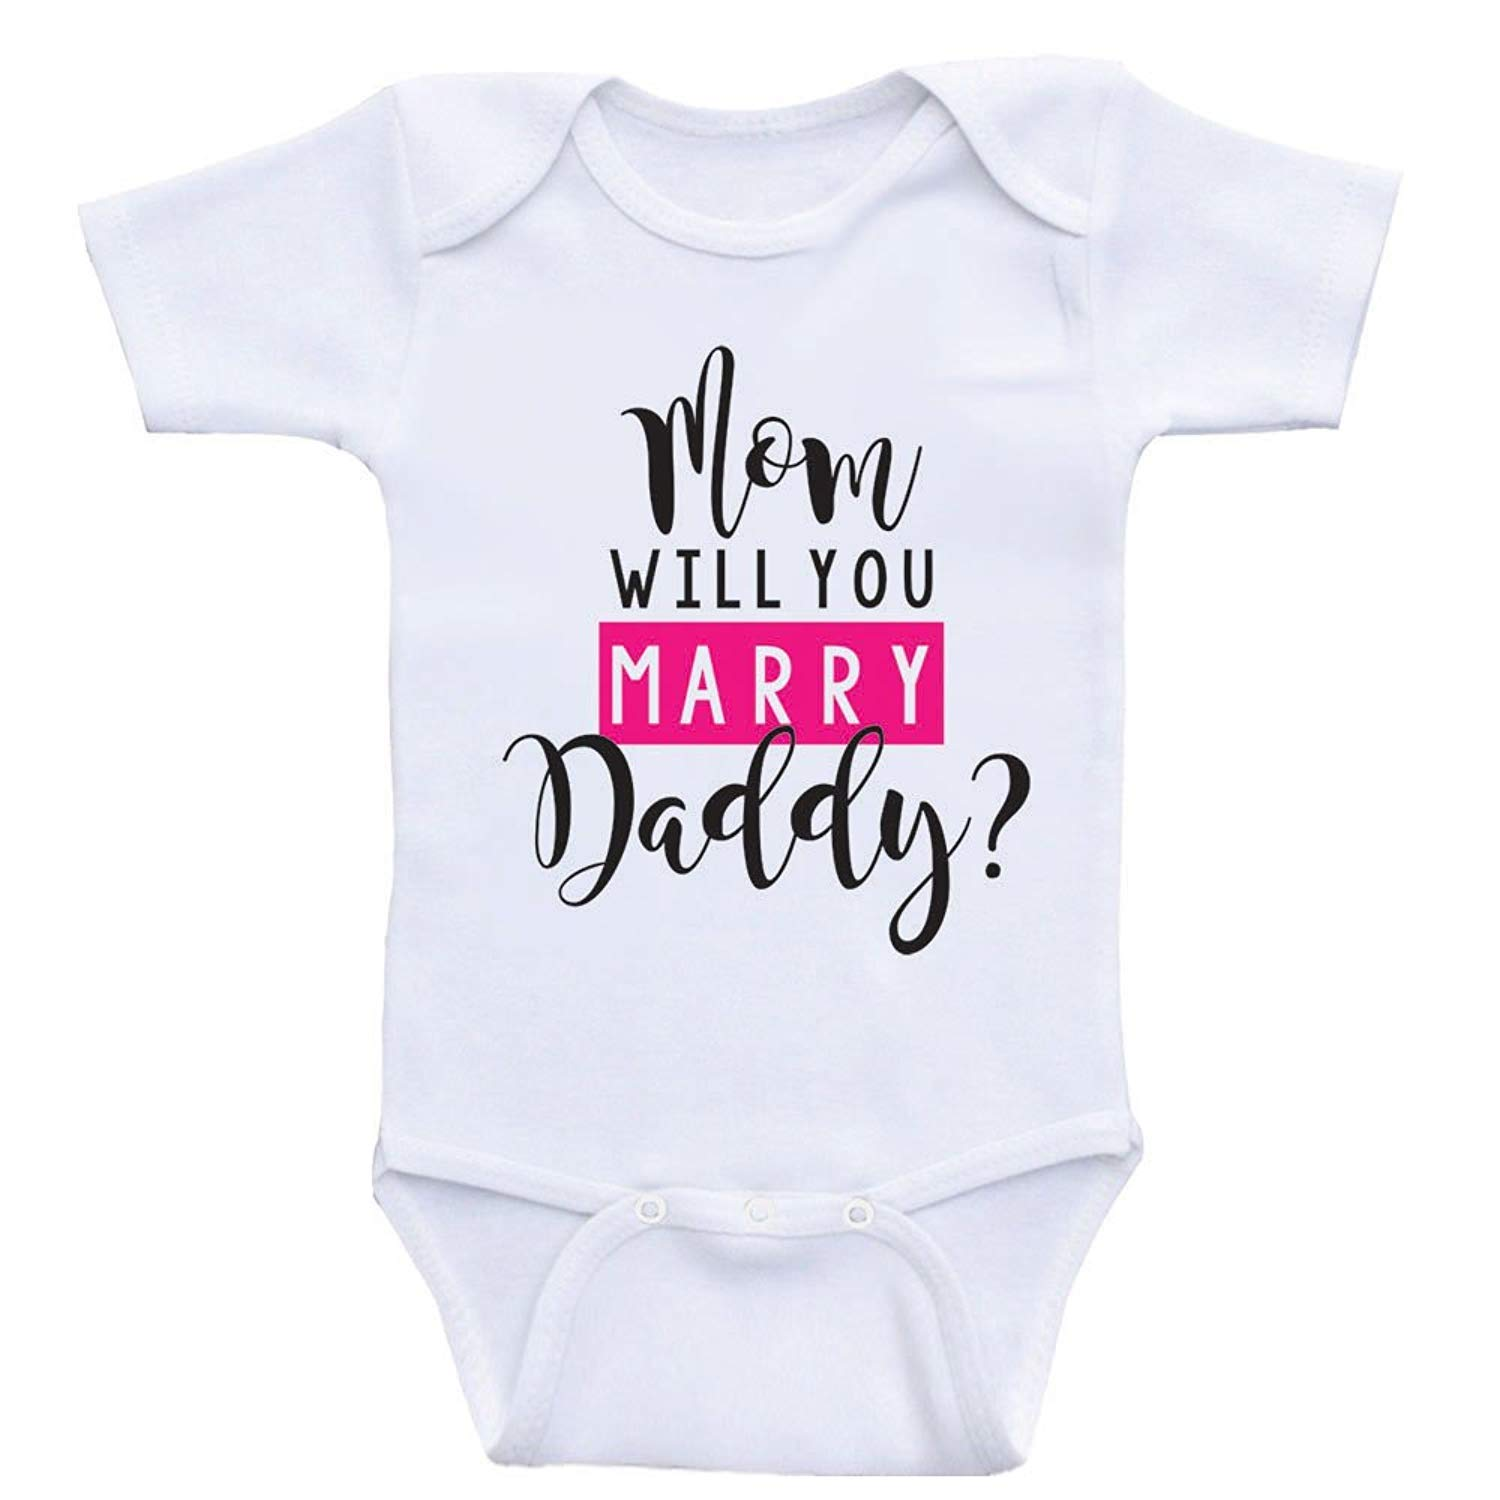 Proposal Funny Baby Jumpsuit One Piece Unisex qidushop Mom Will You Marry Daddy